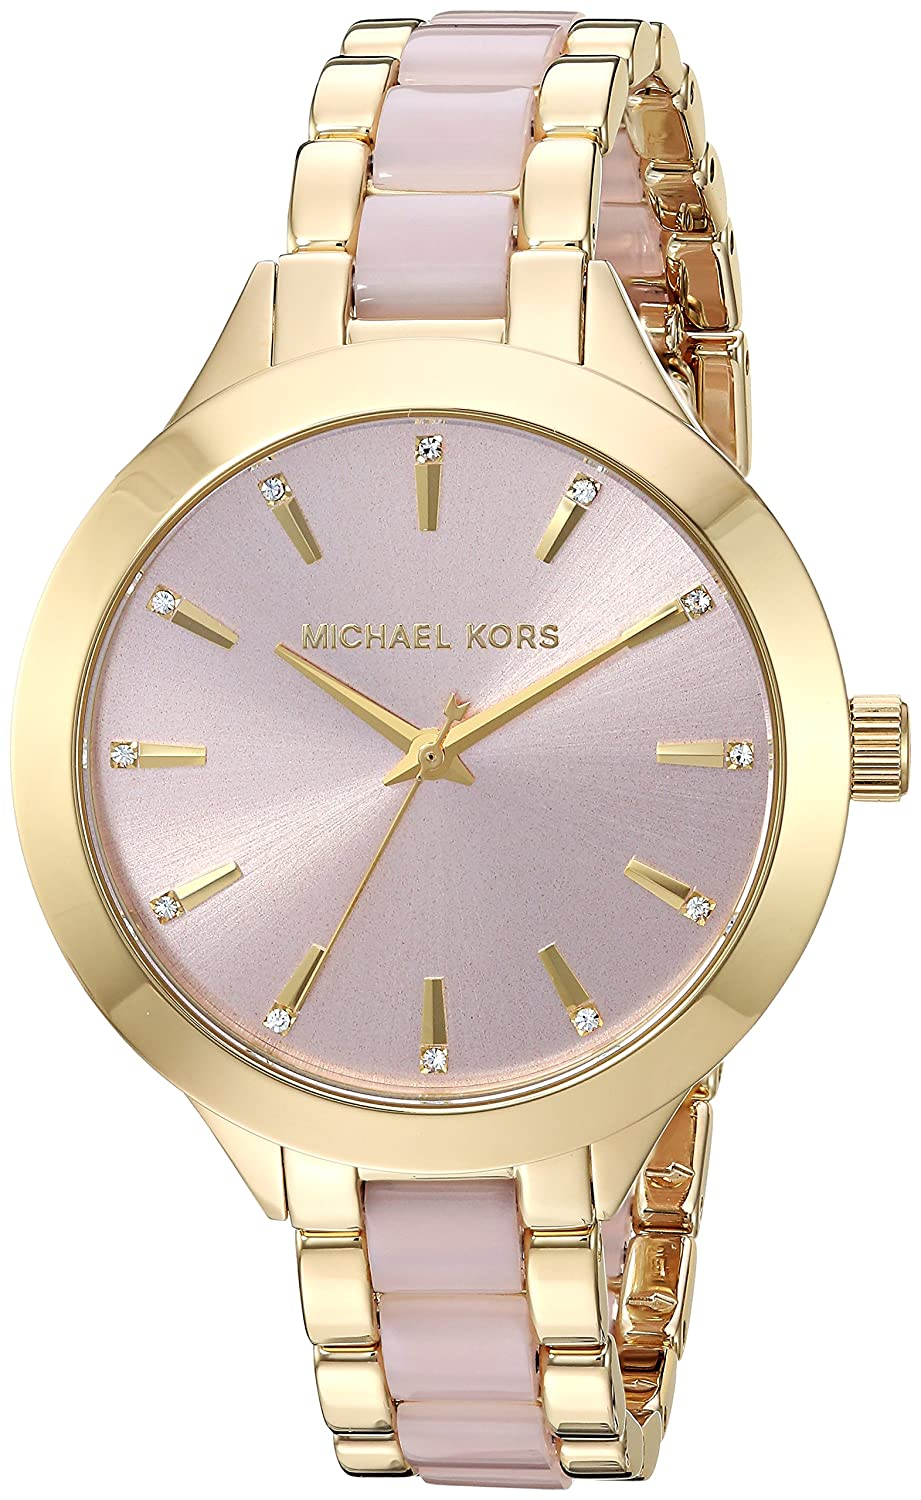 4d4b7dd9c55e3 Michael Kors Women's MK3633 - Elena Rose Gold One Size: Amazon.co.uk ...